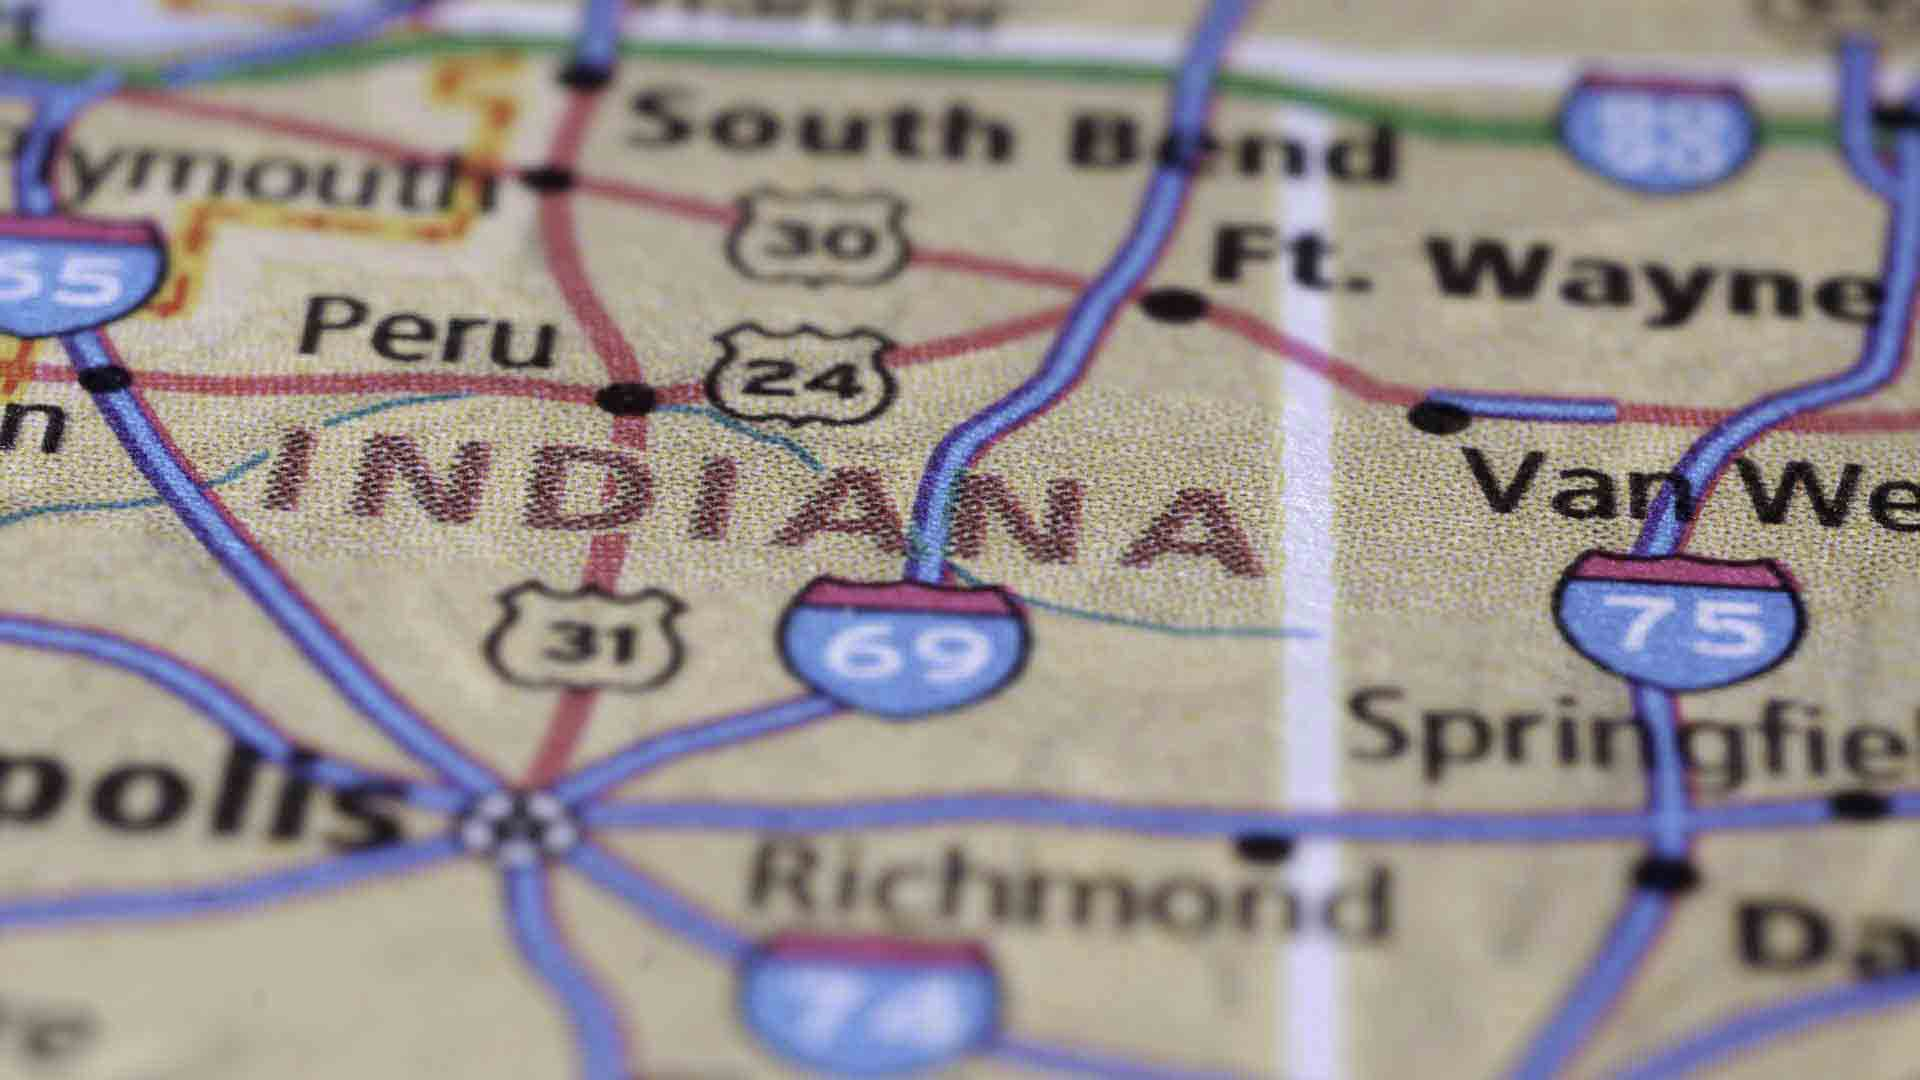 Indiana state and cities on a paper map